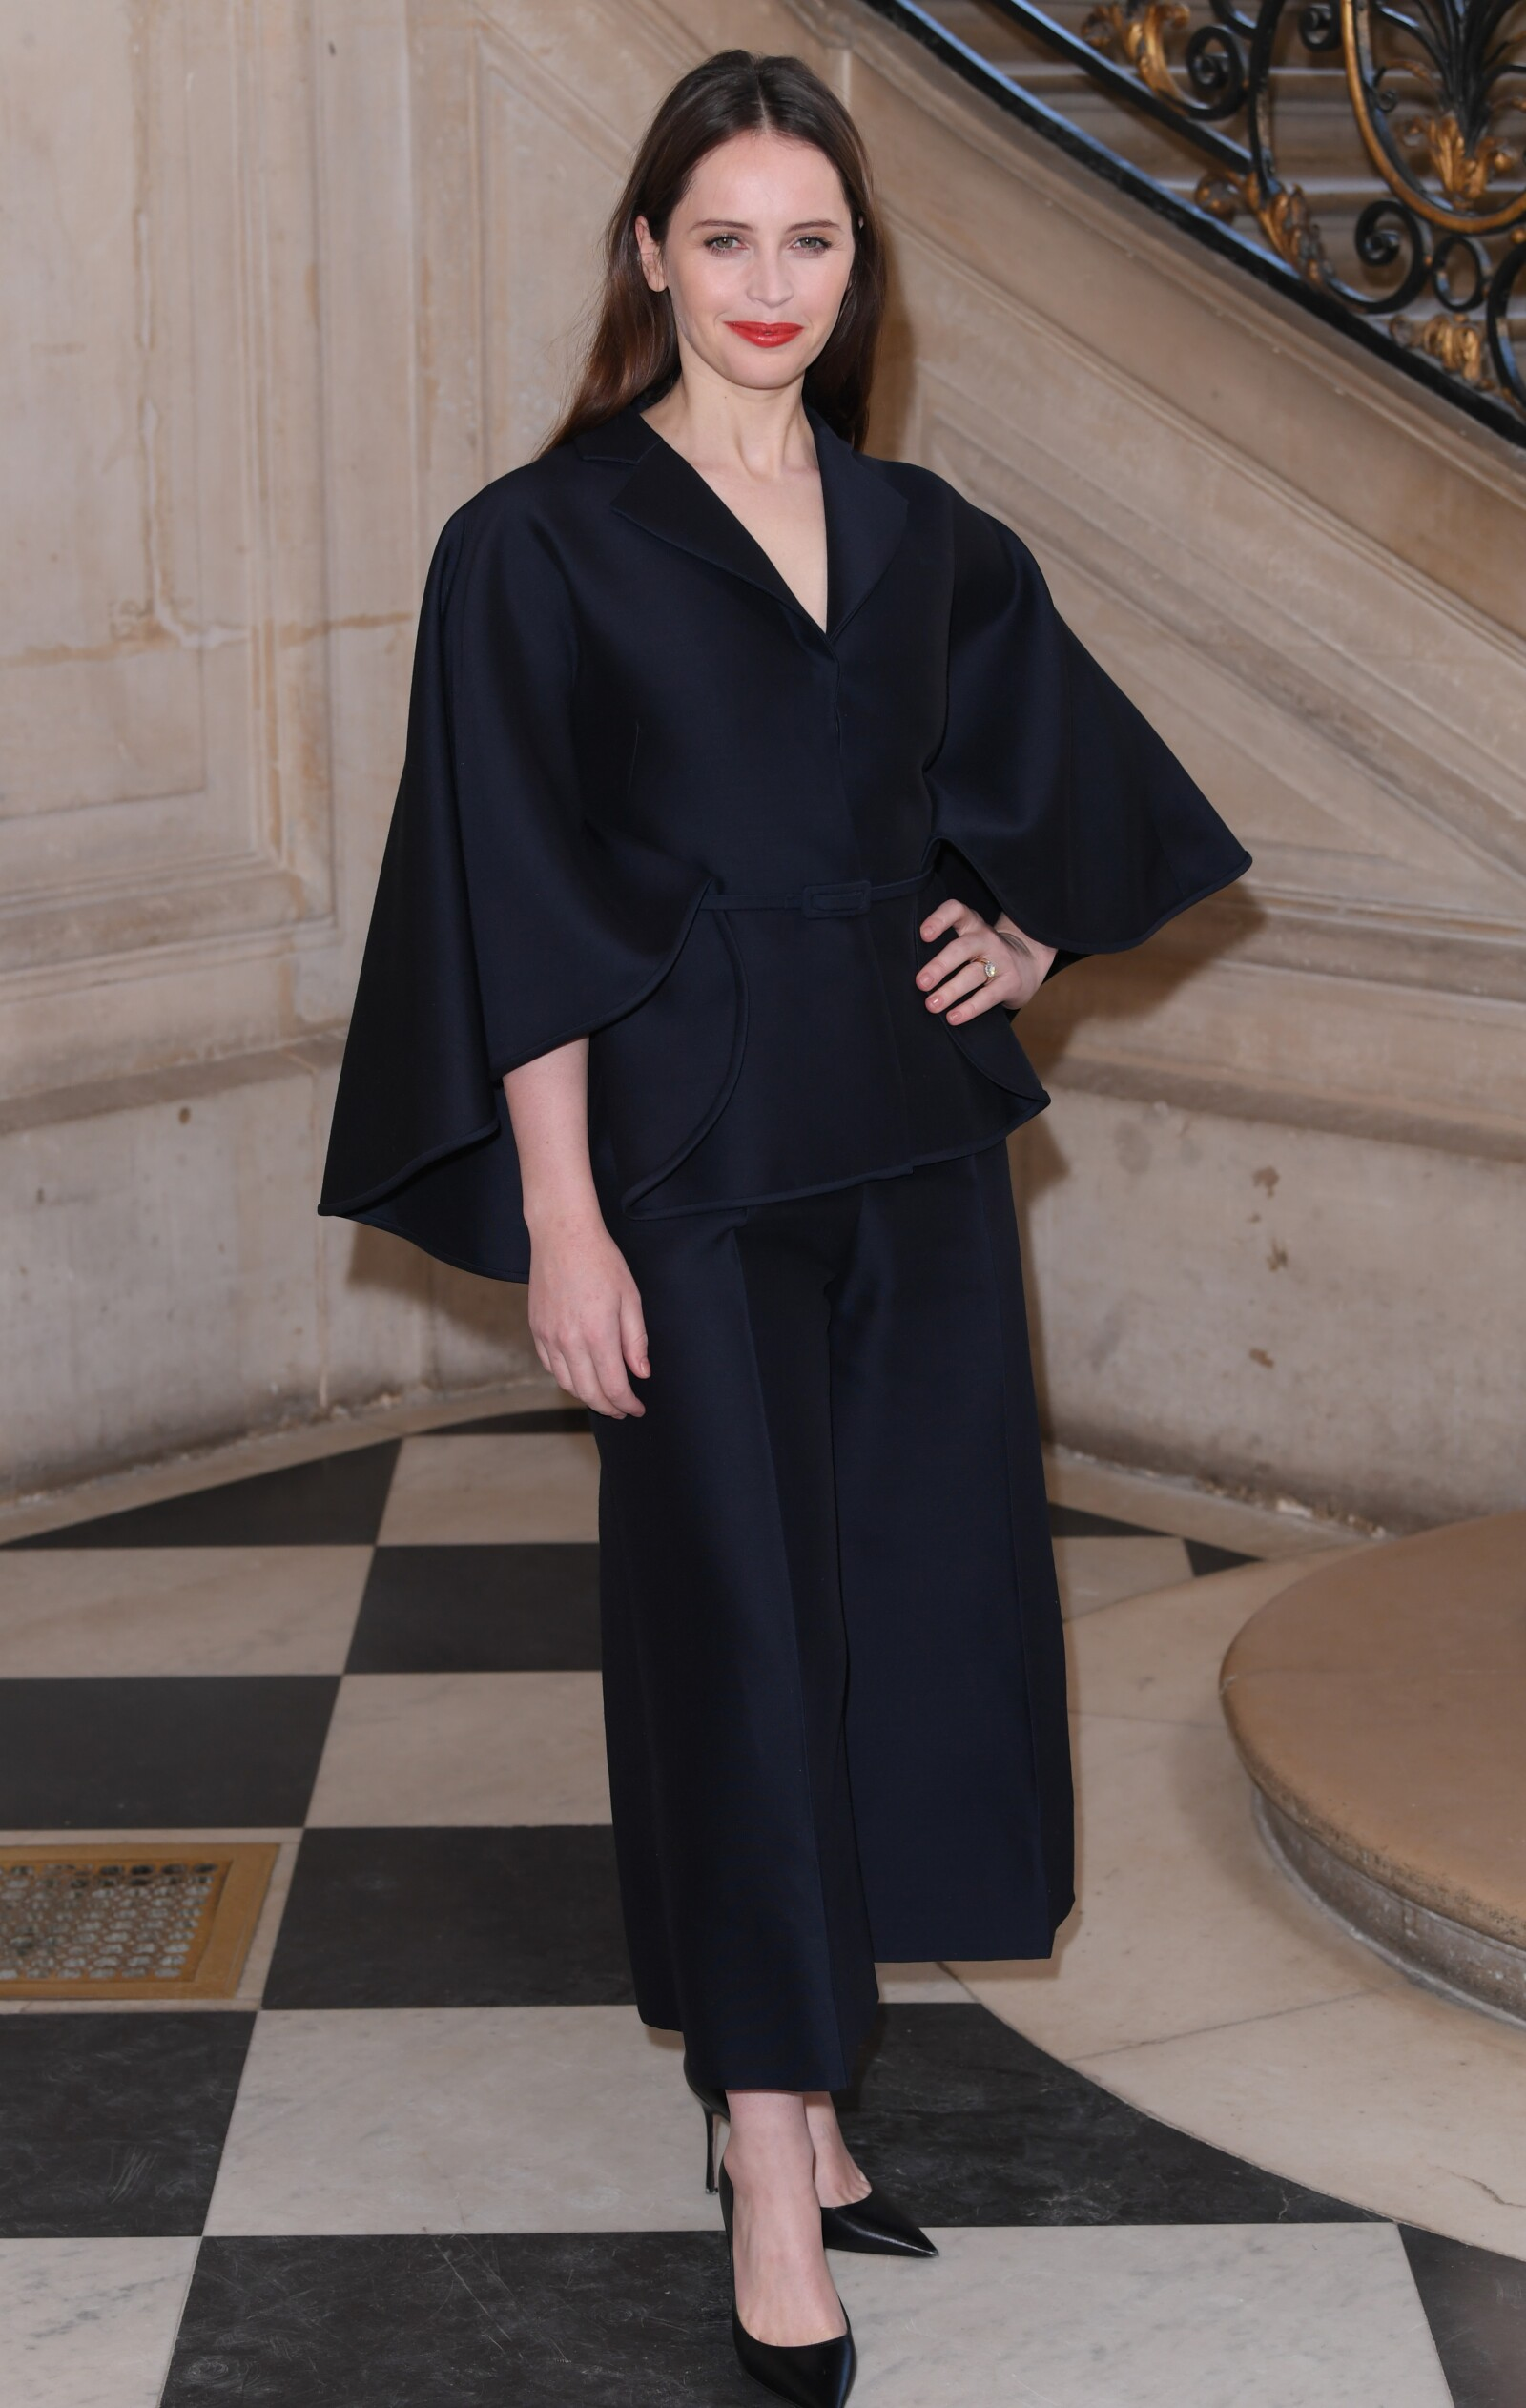 Christian Dior show, Front Row, Spring Summer 2019, Haute Couture Fashion Week, Paris, France - 21 Jan 2019